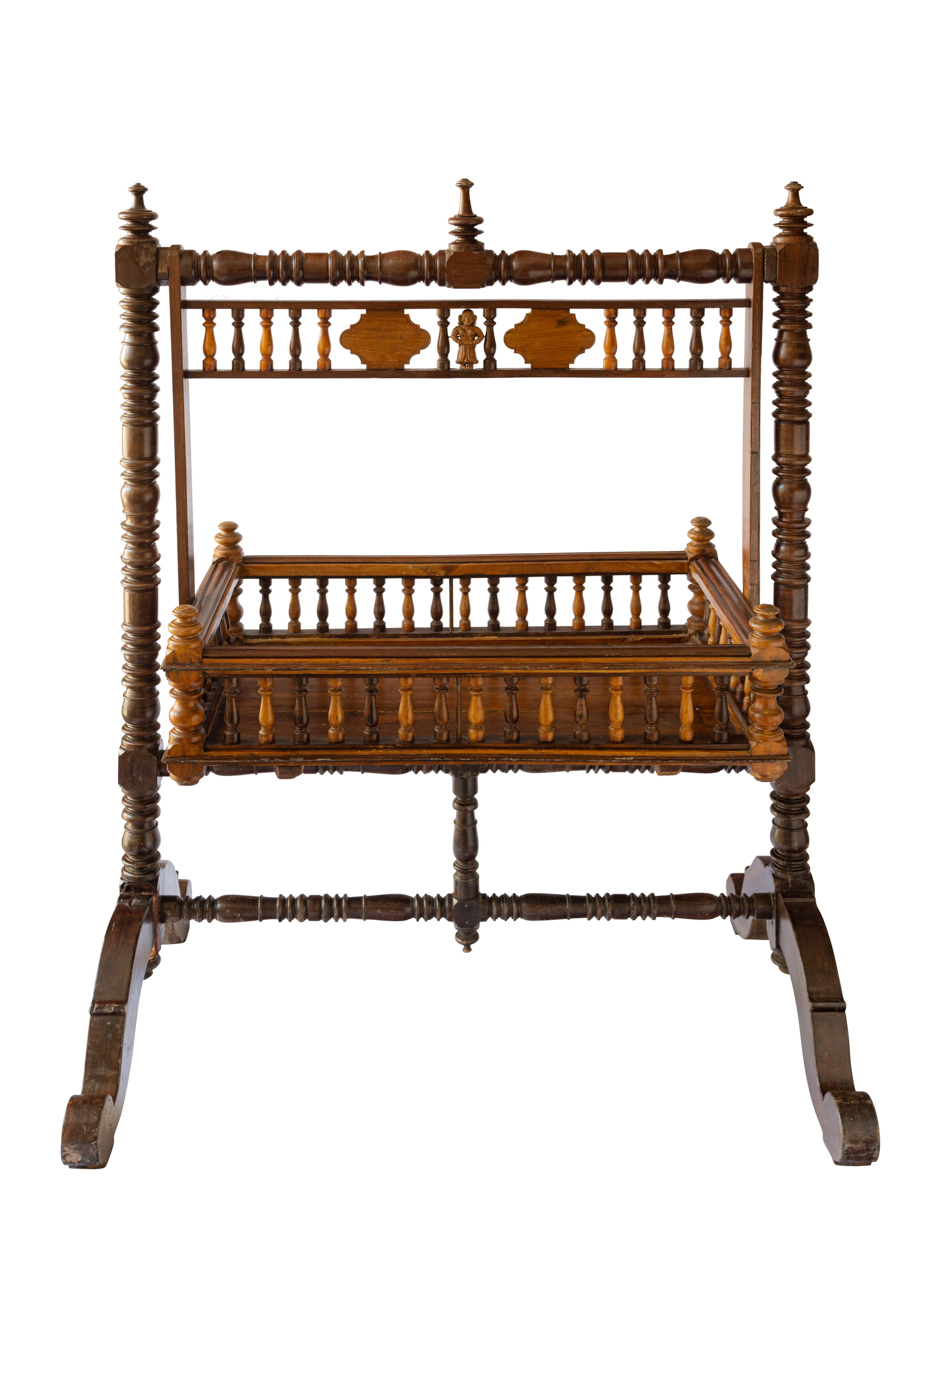 Traditional Indian wooden cradle